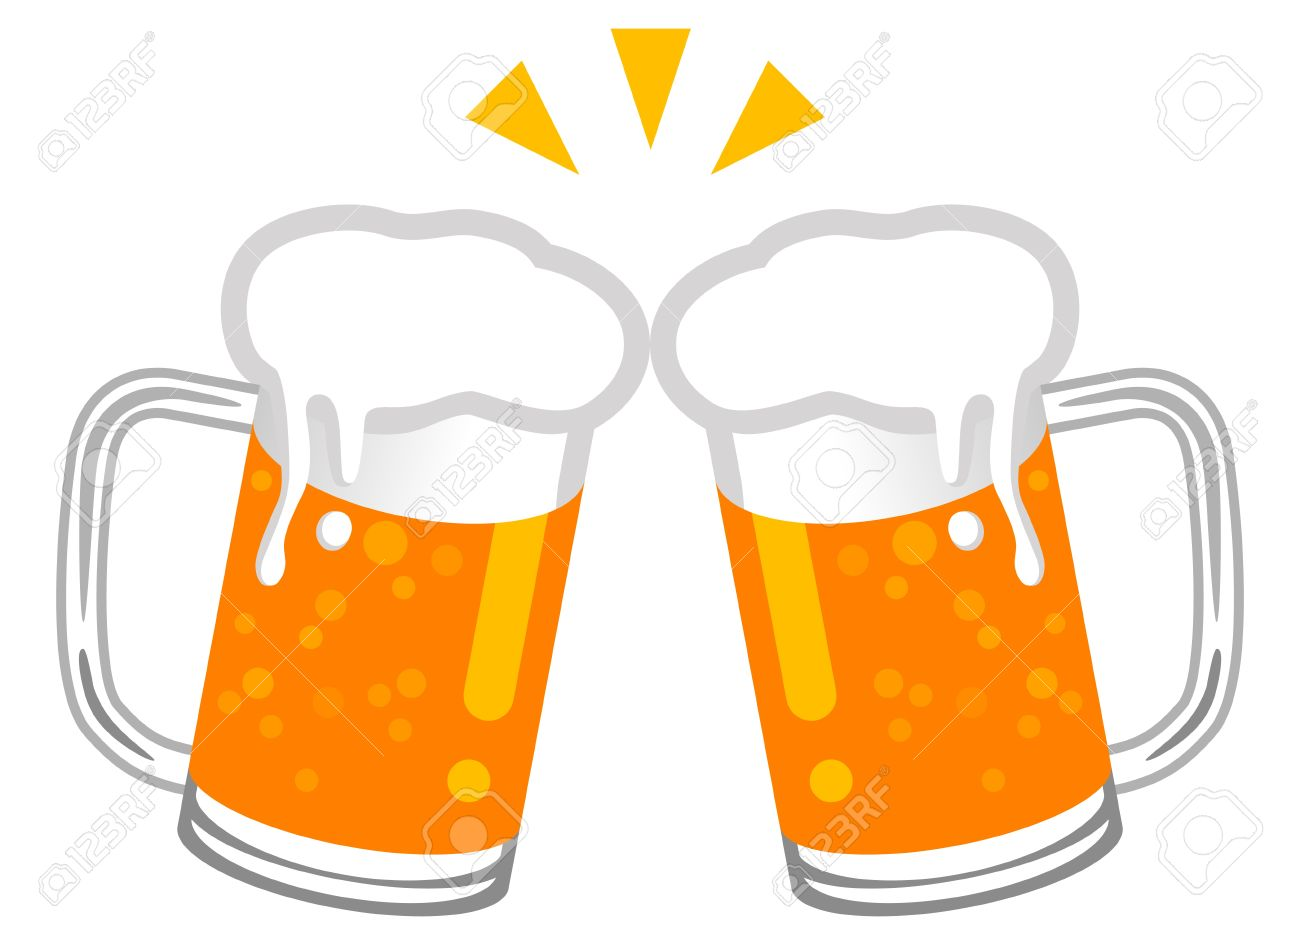 Free beer clipart png free library Free Beer Cliparts, Download Free Clip Art, Free Clip Art on Clipart ... png free library